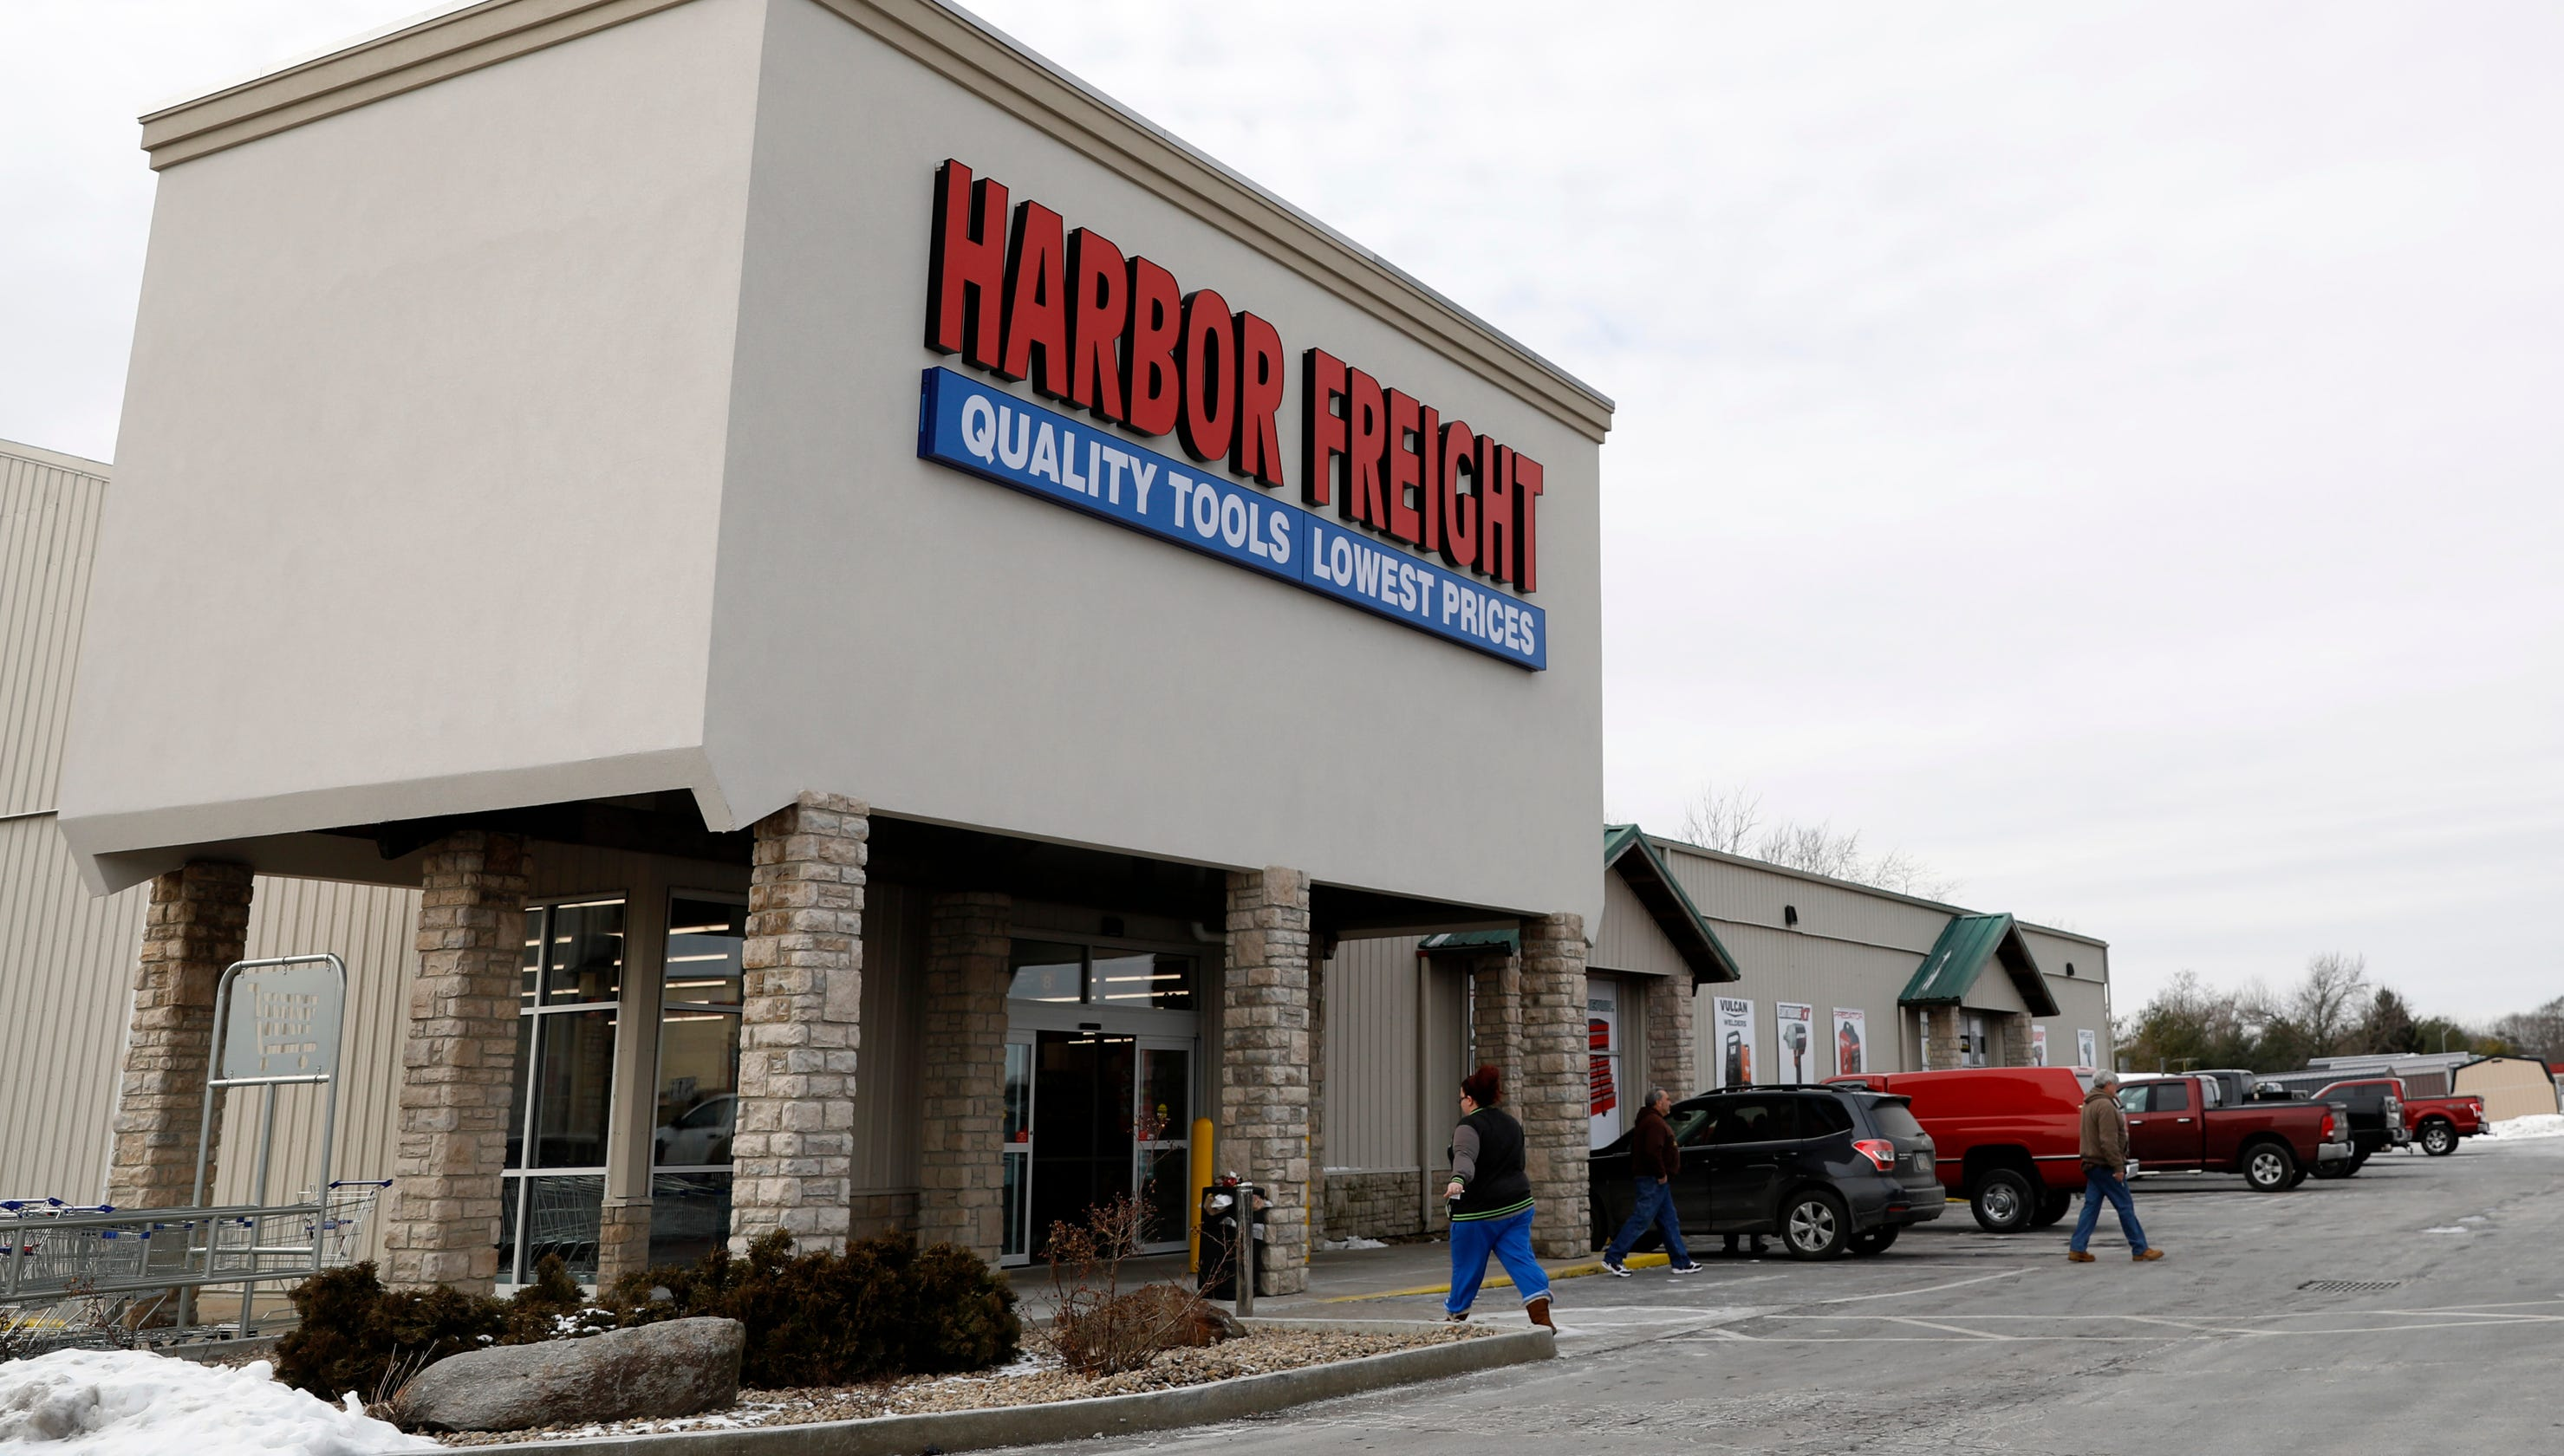 Harbor Freight recalling 454,000 jack stands because they can drop causing 'serious injury'